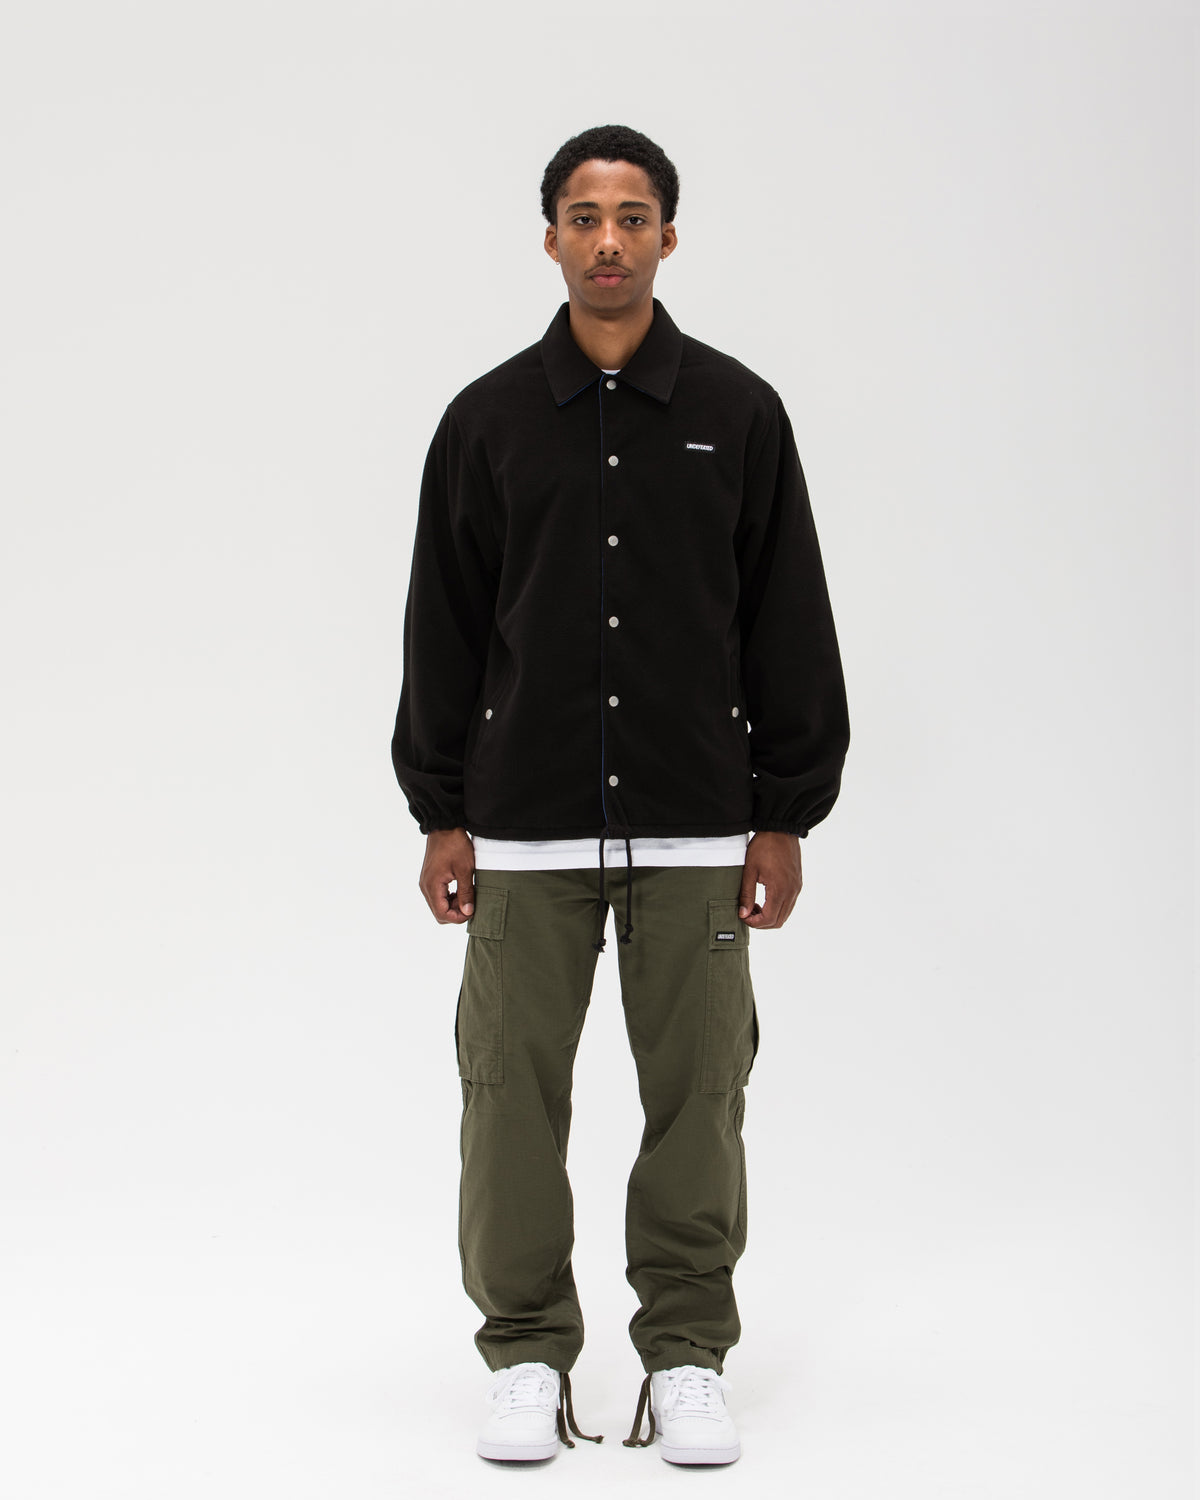 UNDEFEATED REVERSIBLE COACHES JACKET